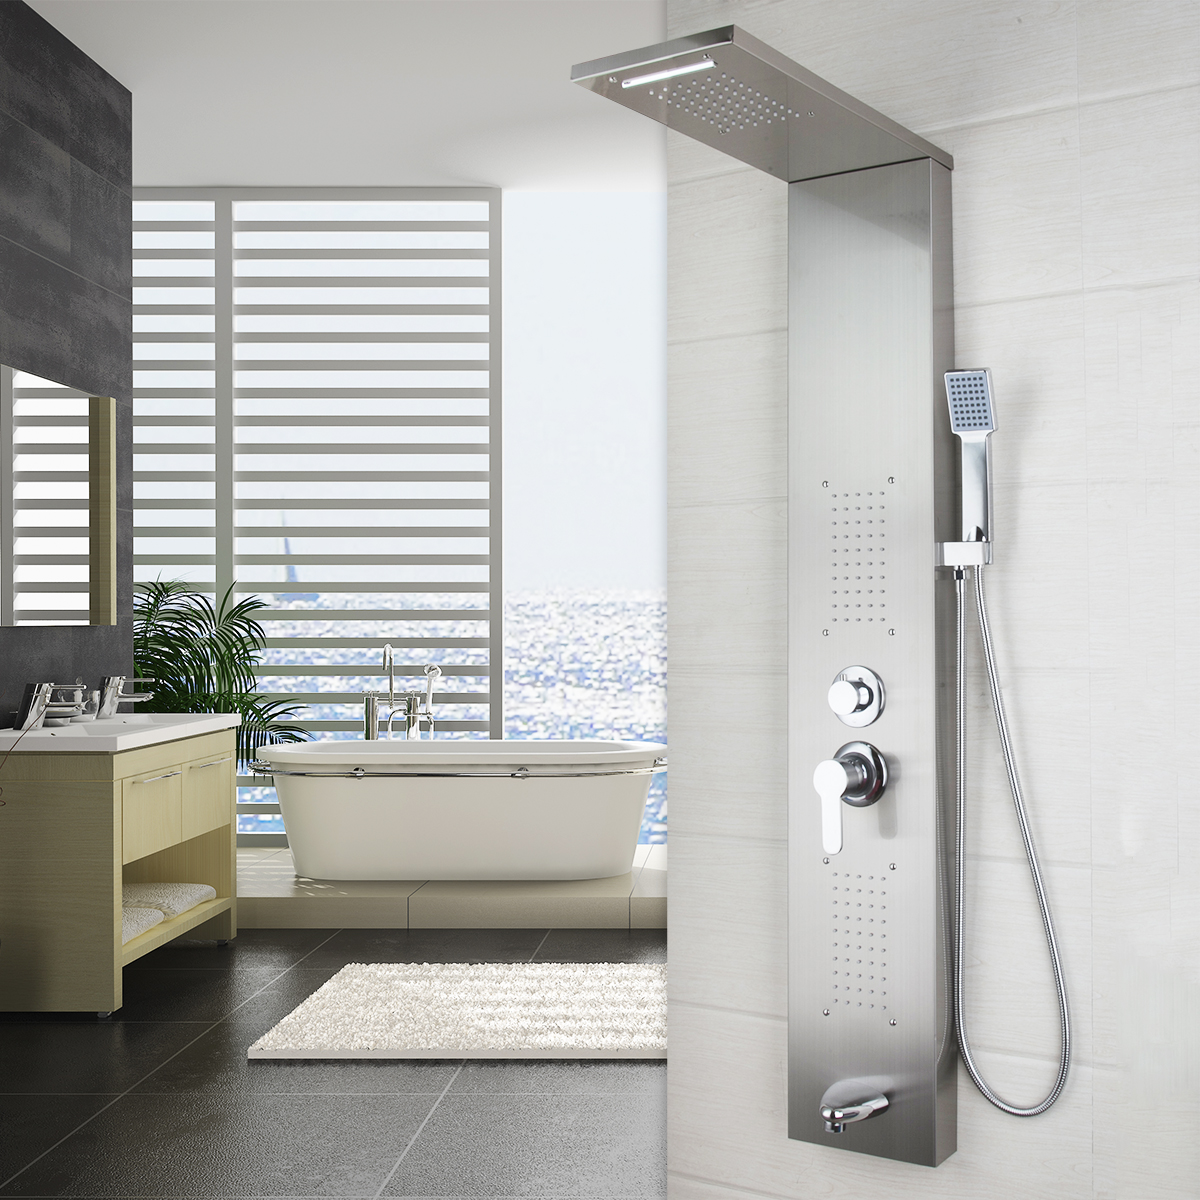 Shower Panel Screen Massage Jets Mixer Tap Bathroom Wall Mounted Faucet Unit